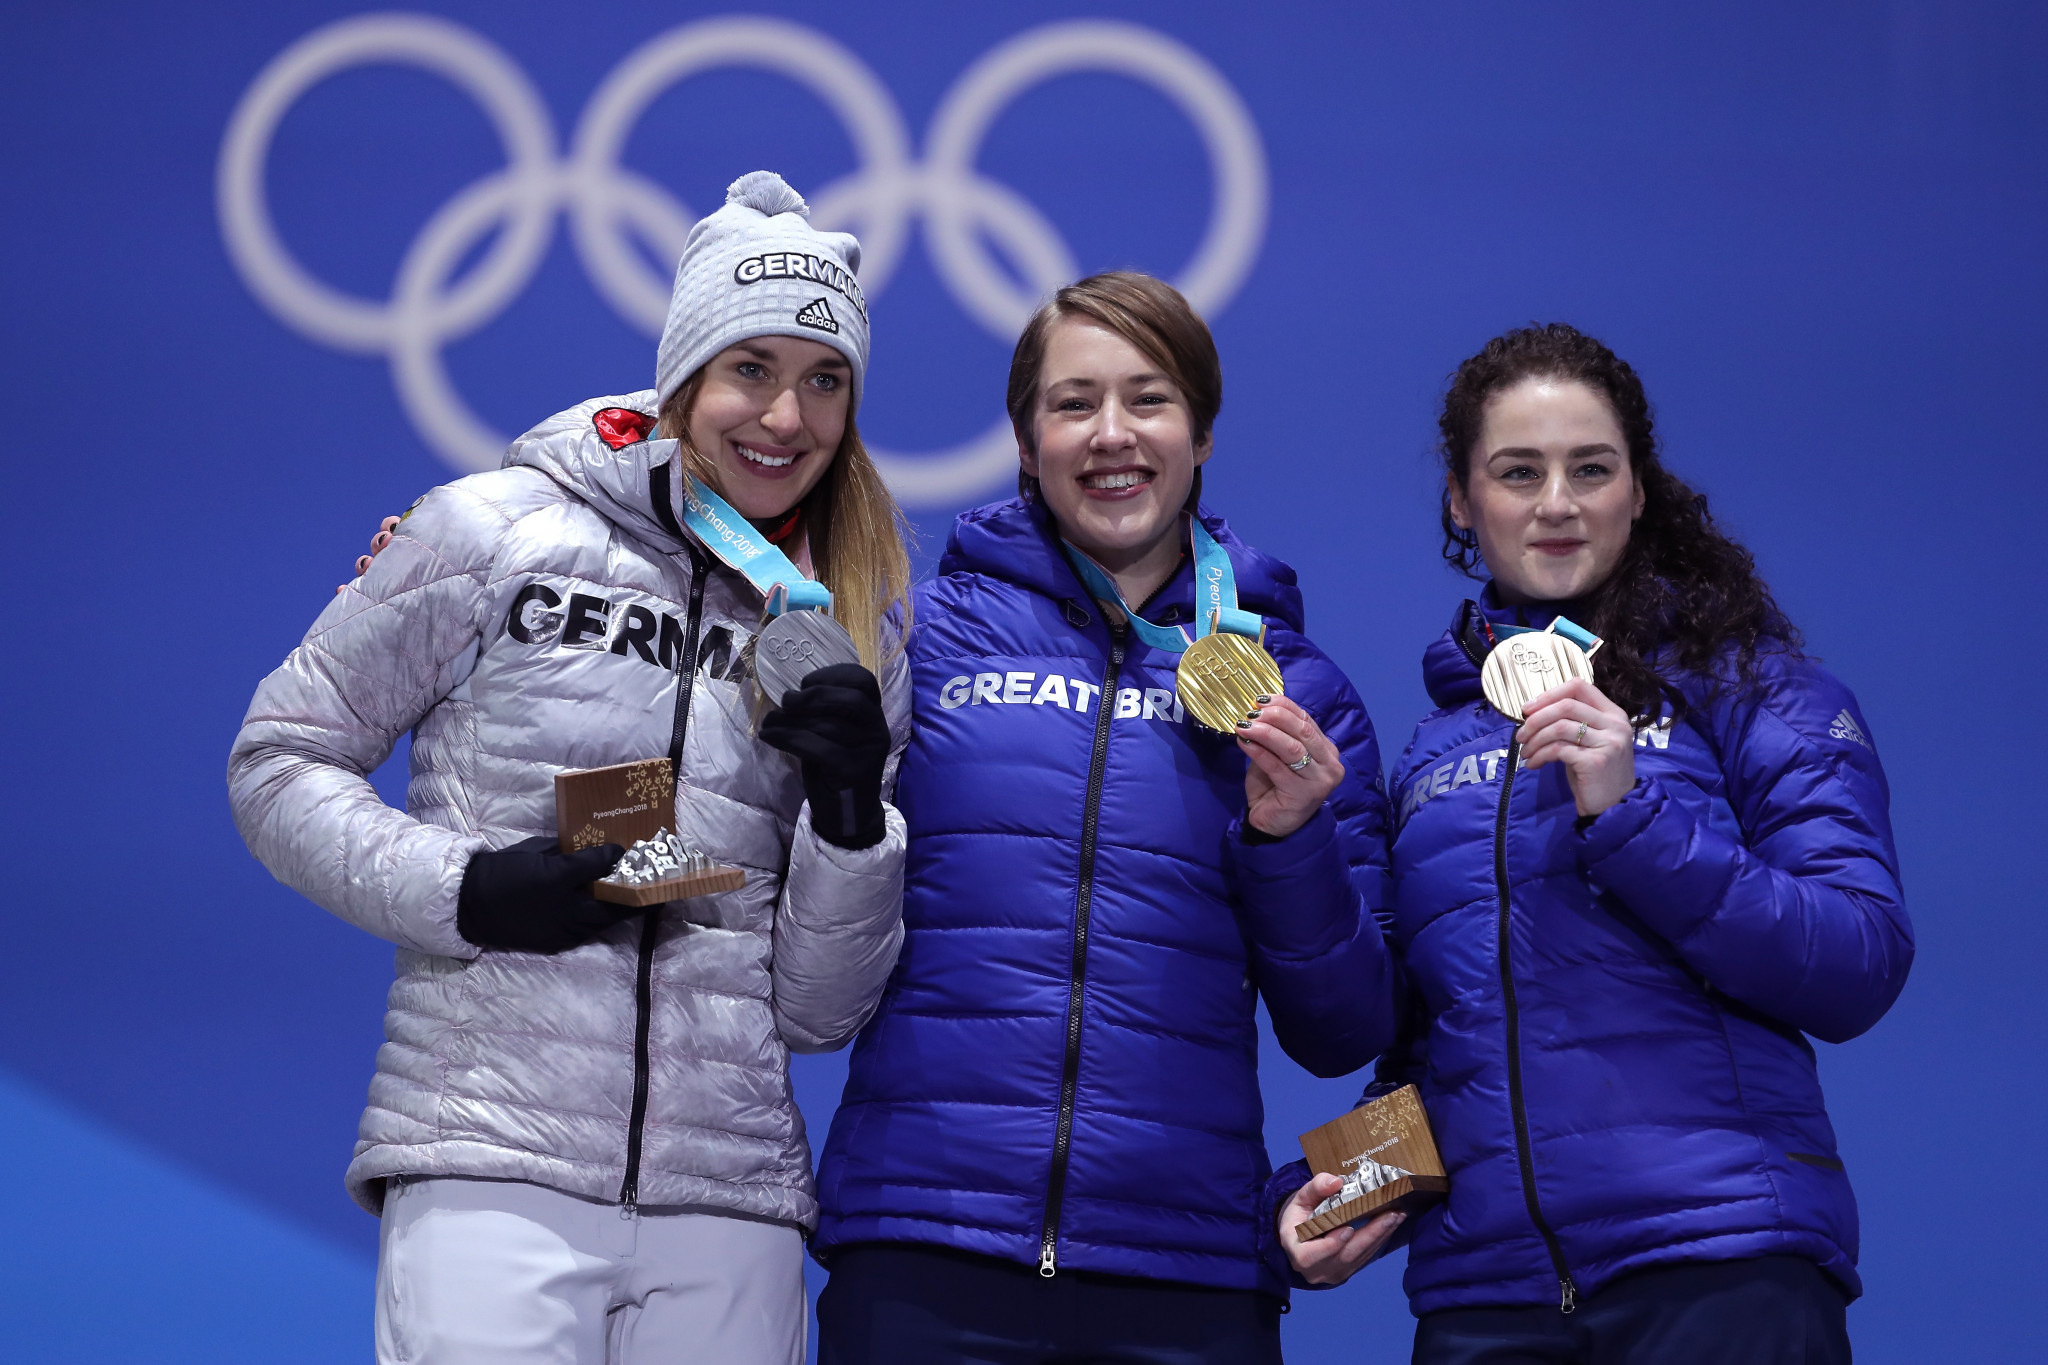 Mark Woods is credited with helping identify and develop the talent of Lizzy Yarnold, centre, and Laura Dees, right, who won gold and bronze respectively at the Pyeongchang 2018 Winter Olympics ©Getty Images